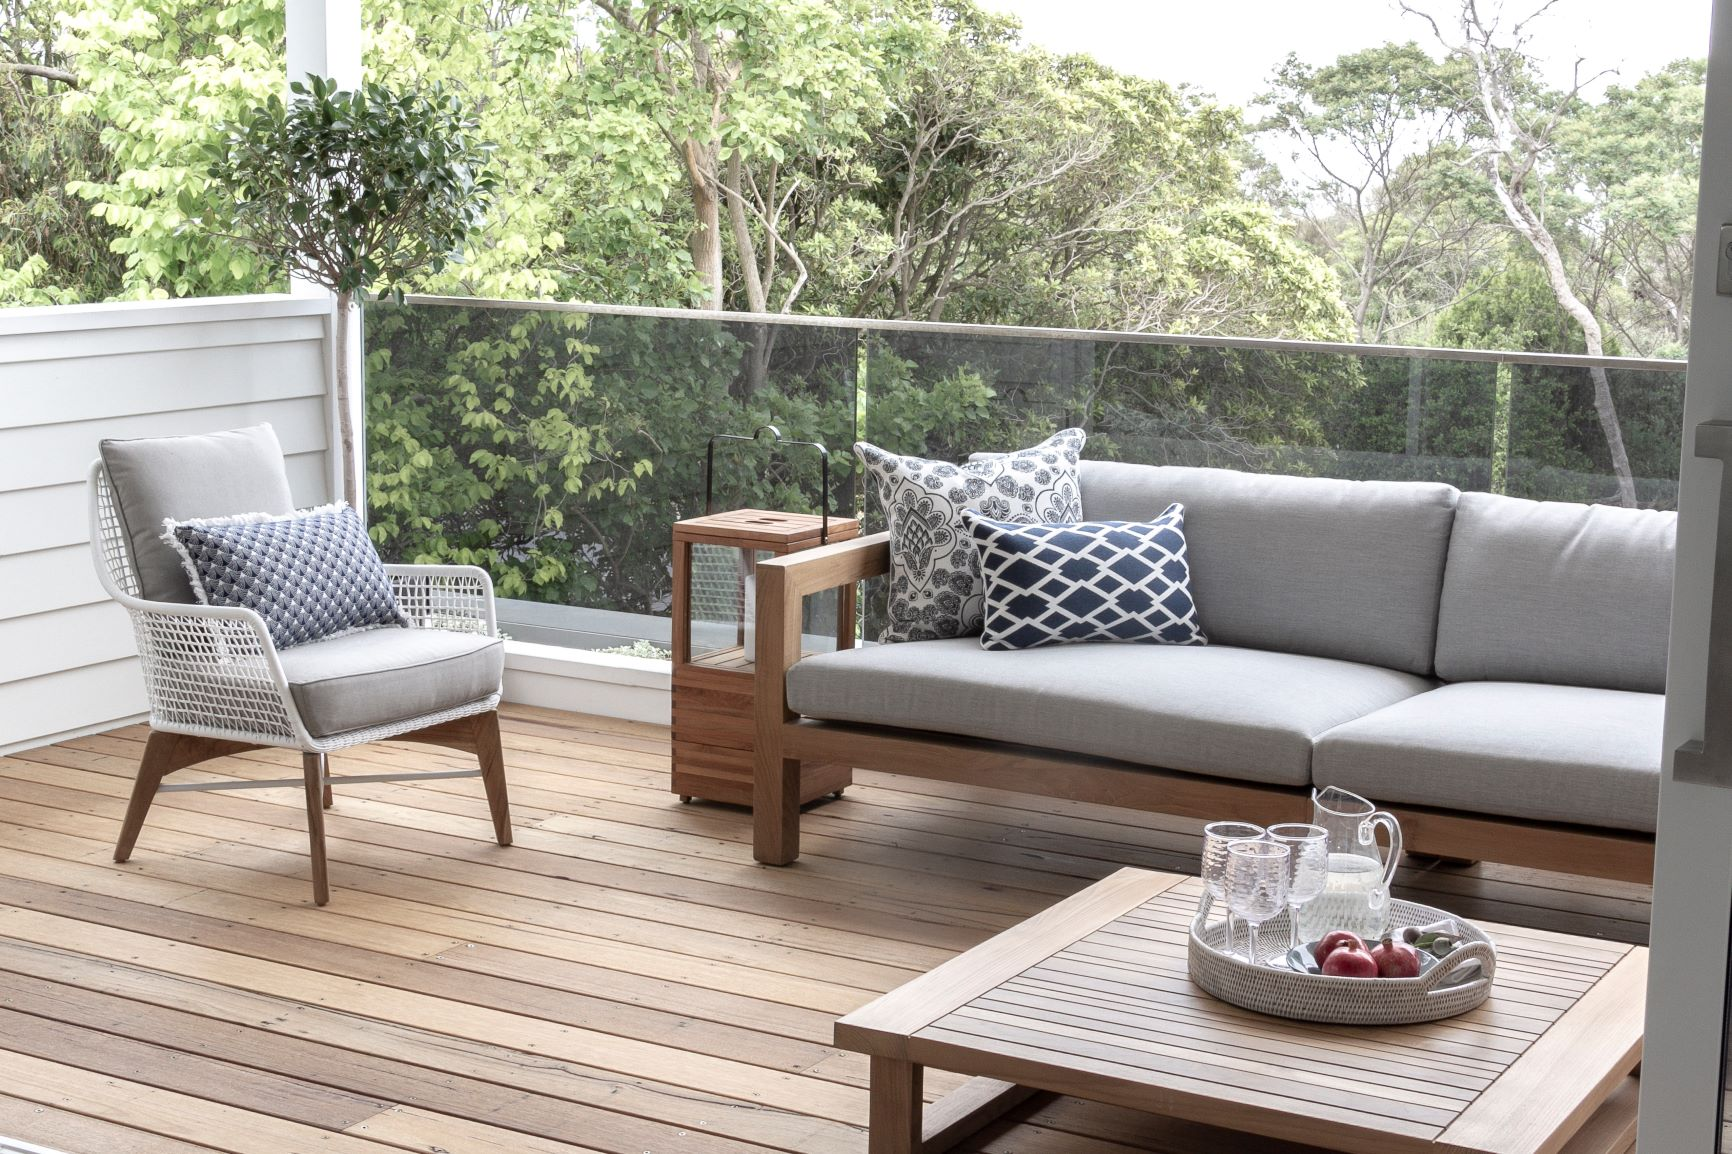 Connect the indoors to the outdoors